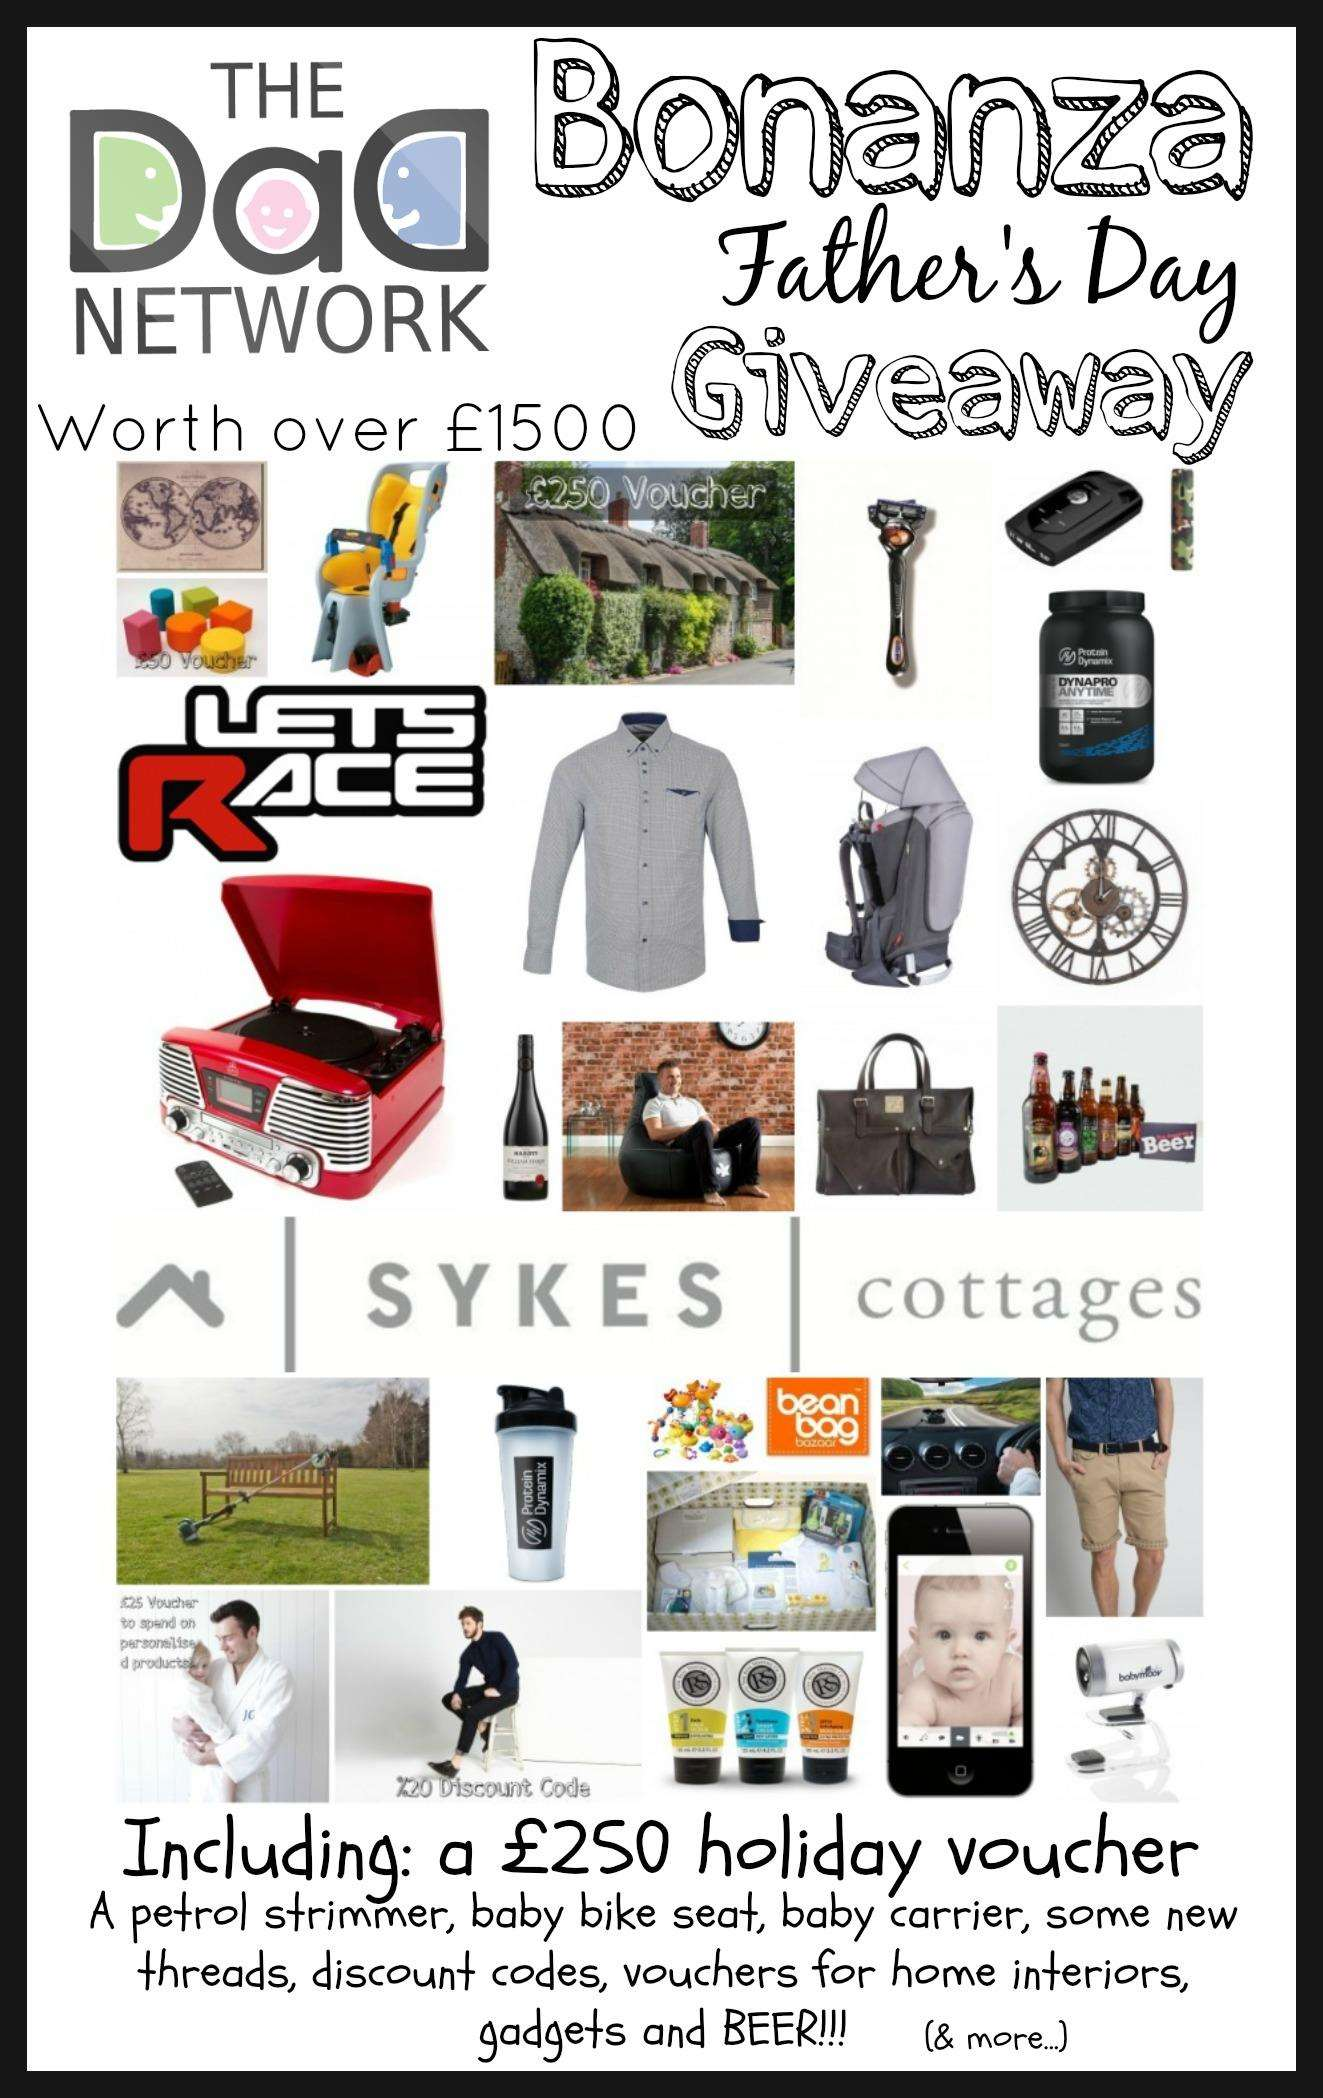 Father's Day Free Giveaway Bonanza - Win over £1500 freebies! Plus a £250 Holiday voucher!, Bonanza Artwork%, new-dad%